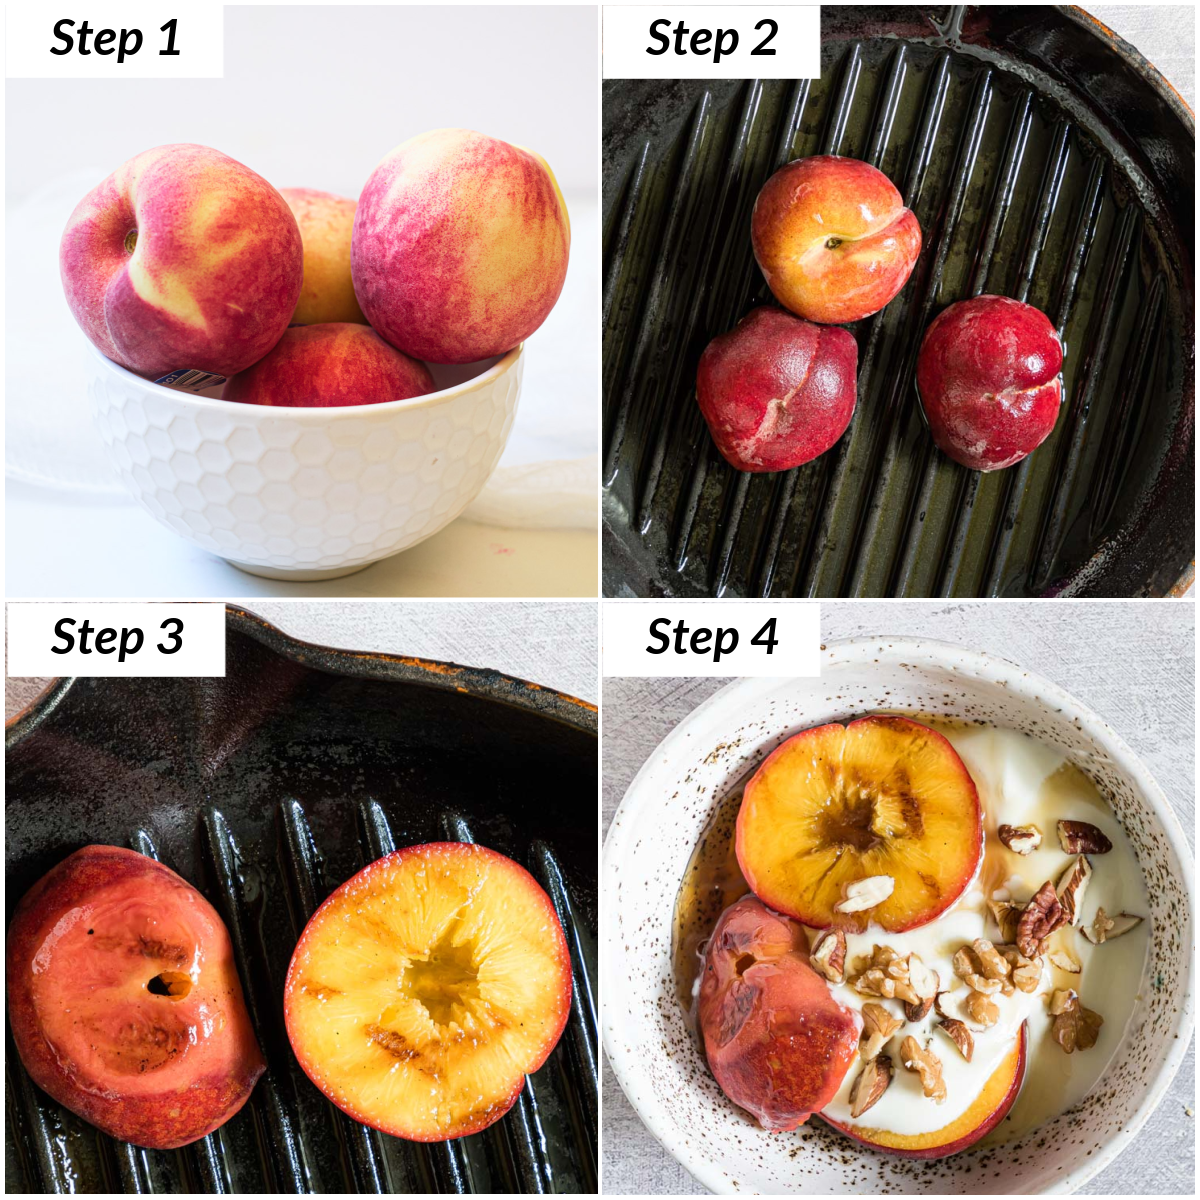 image collage showing the steps for making grilled peaches